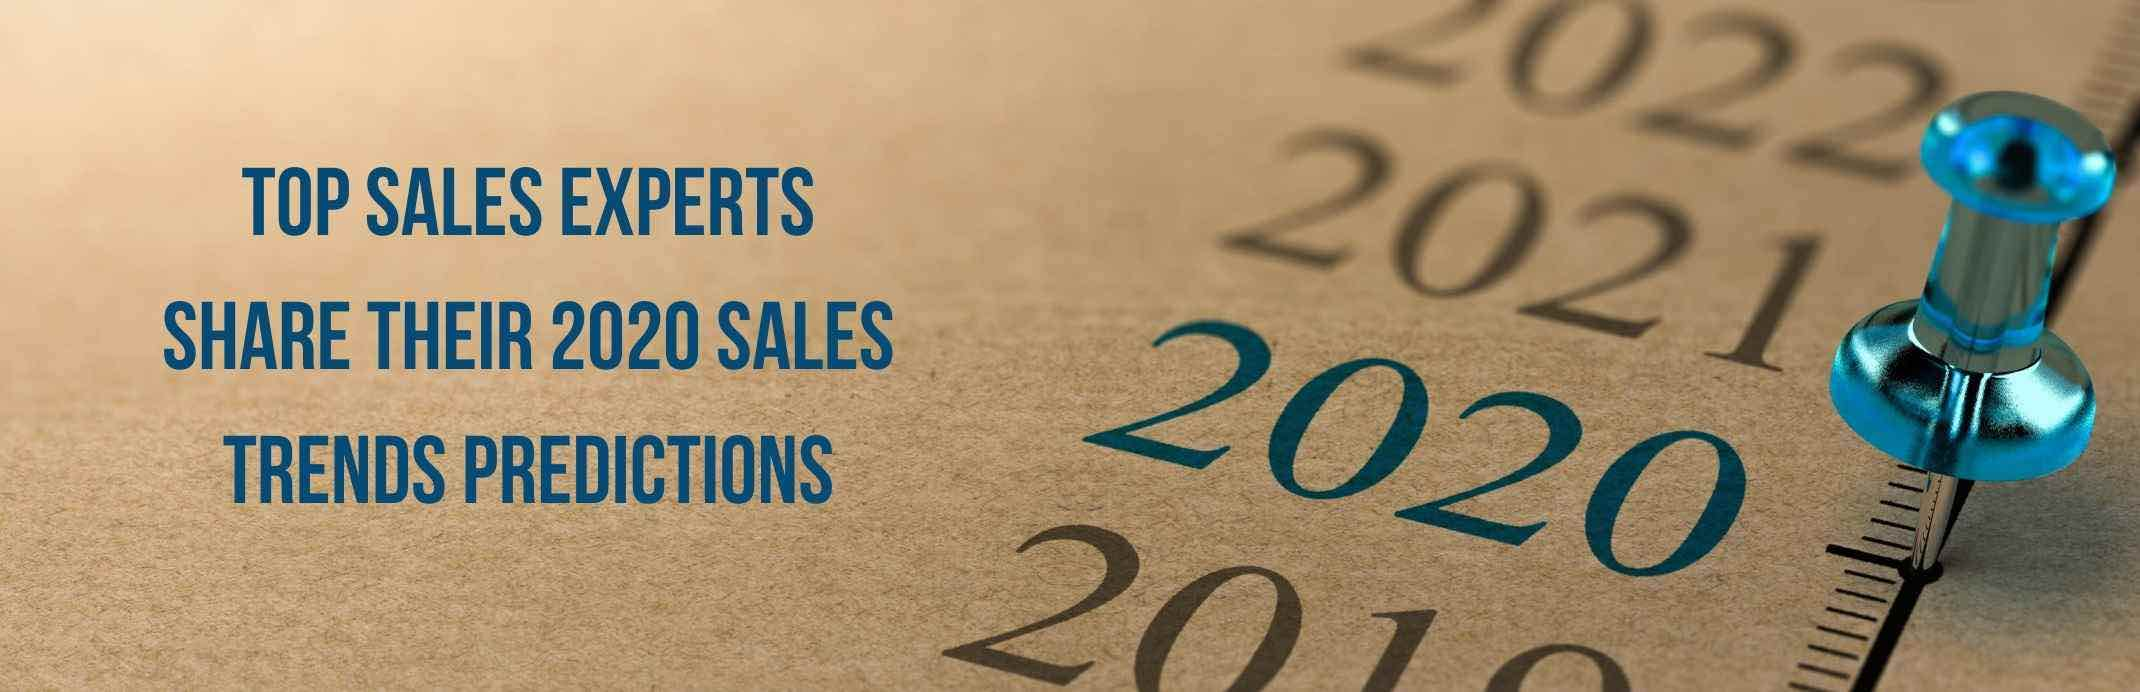 Image for Top Sales Experts Share Their 2020 Sales Trends Predictions